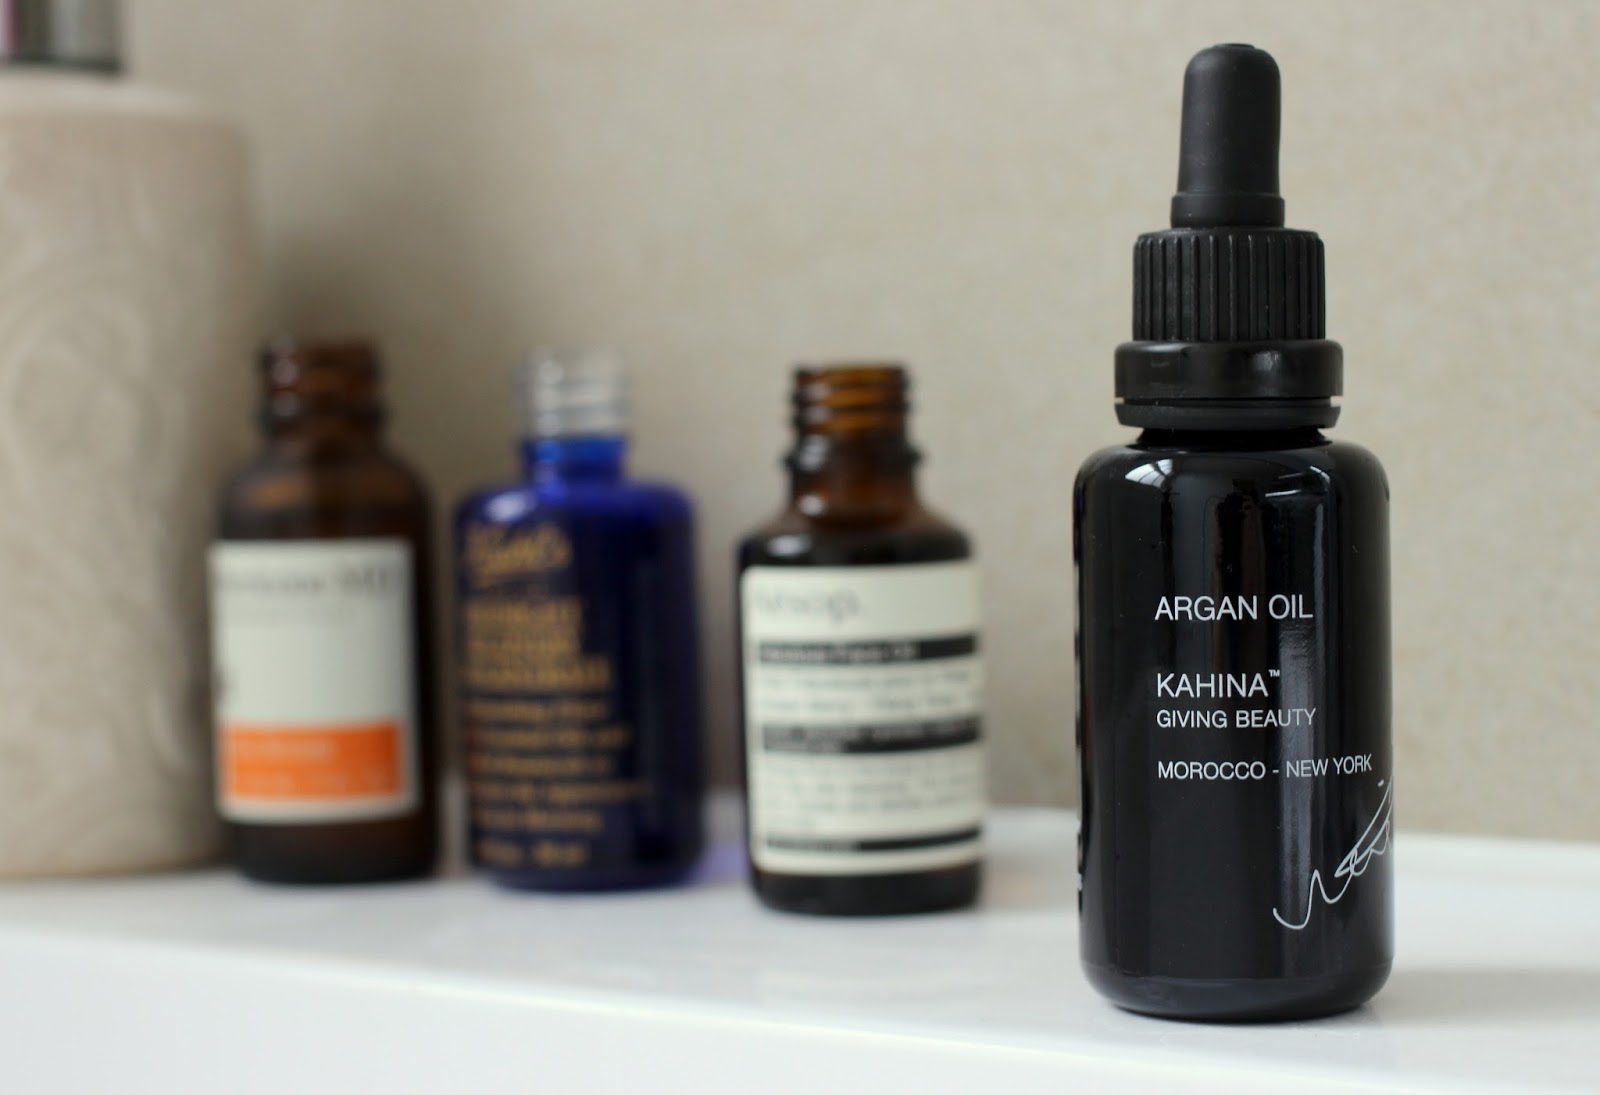 Kahina Argan Oil Review